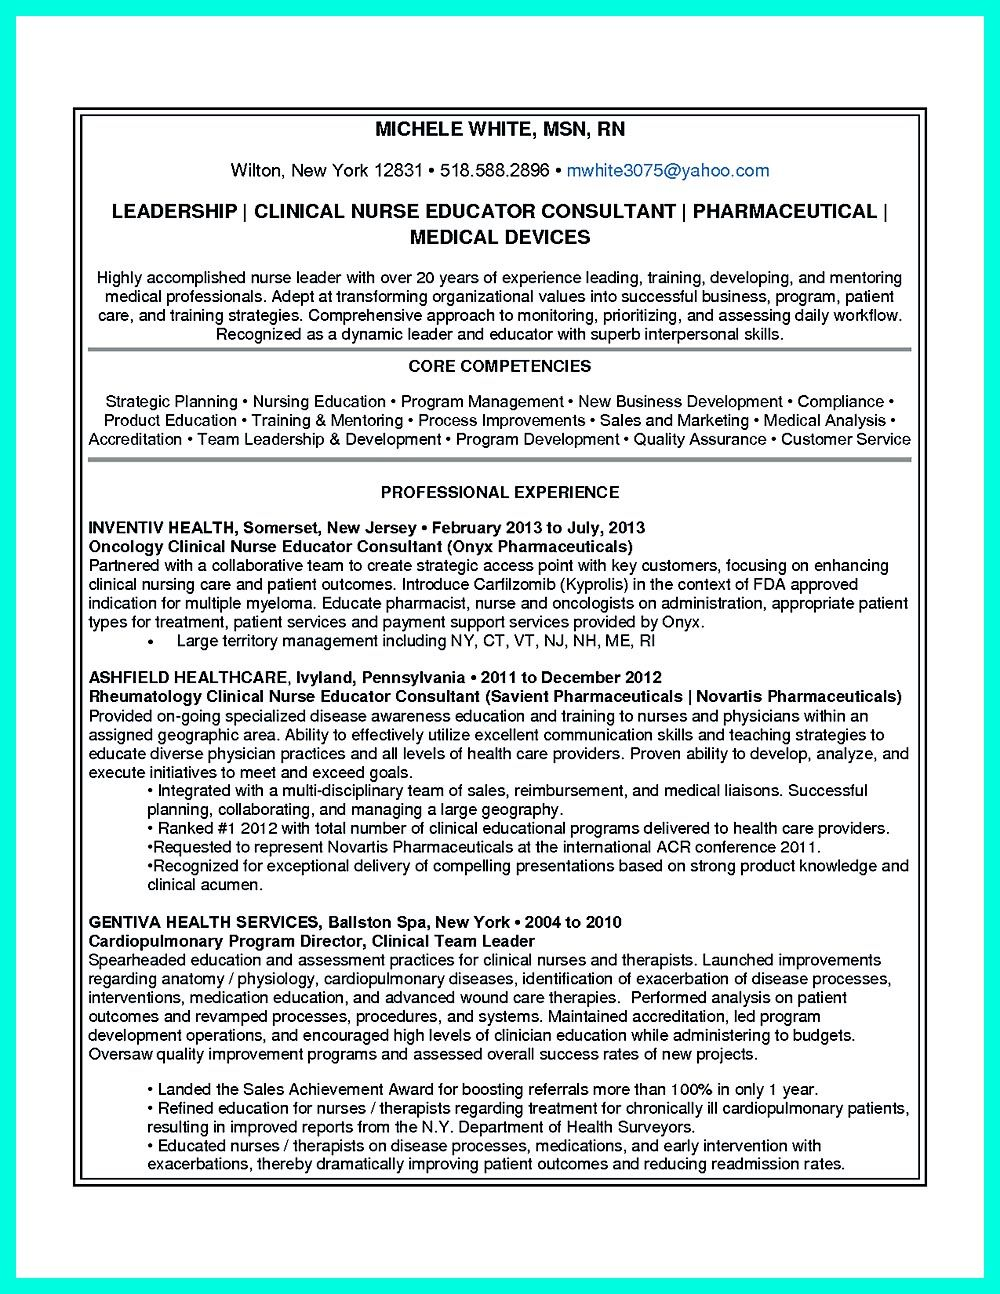 Clinical Research Coordinator Resume Objectives That Are Effective